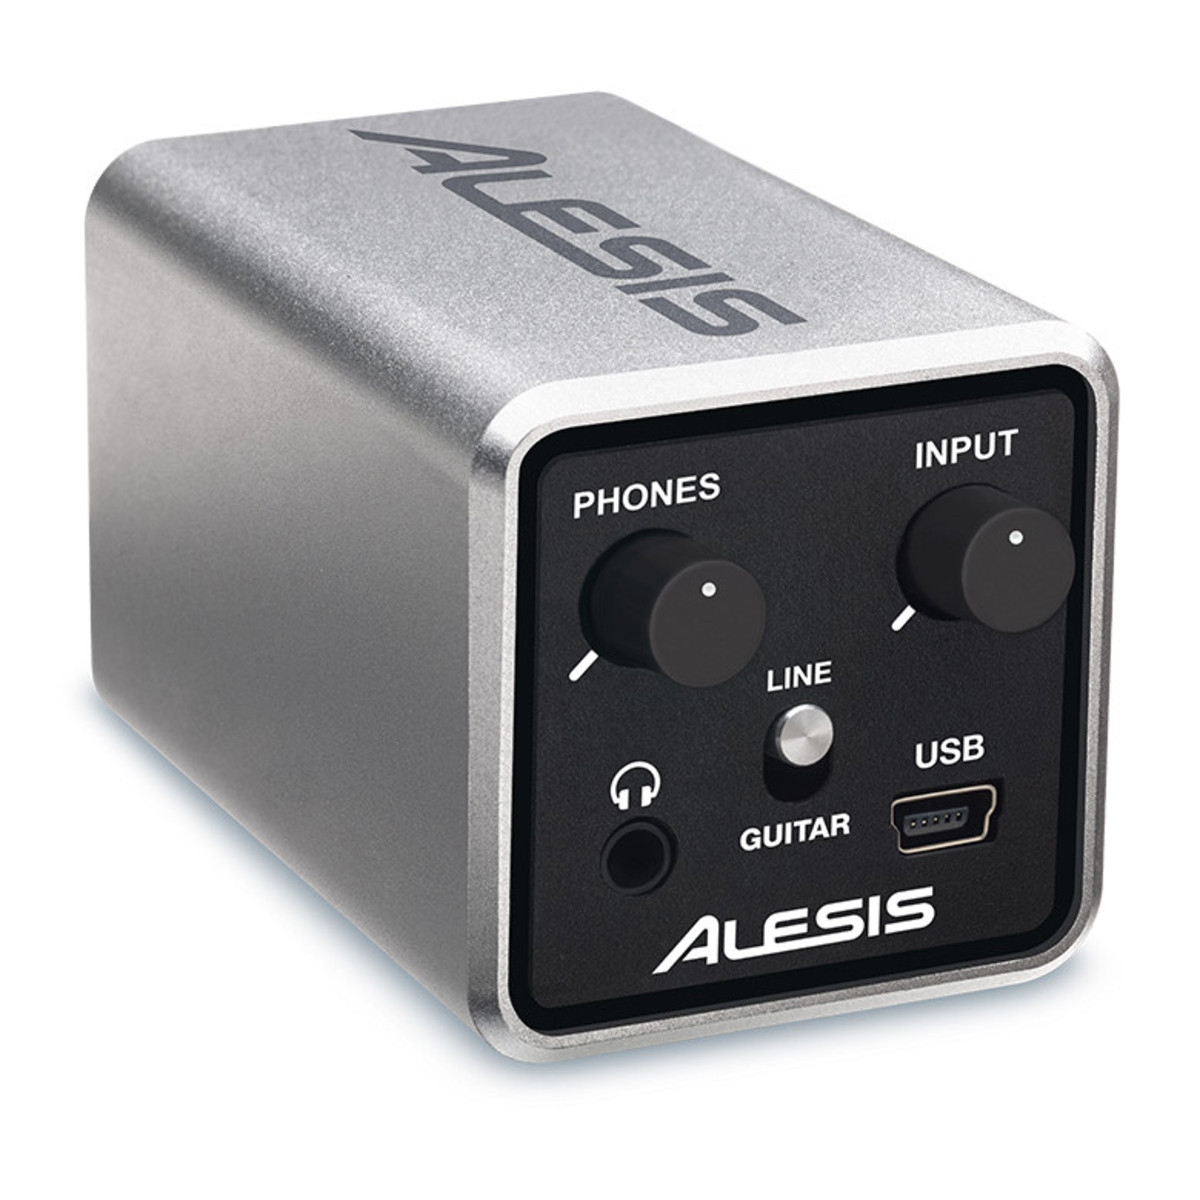 alesis core 1 usb audio interface at gear4music. Black Bedroom Furniture Sets. Home Design Ideas